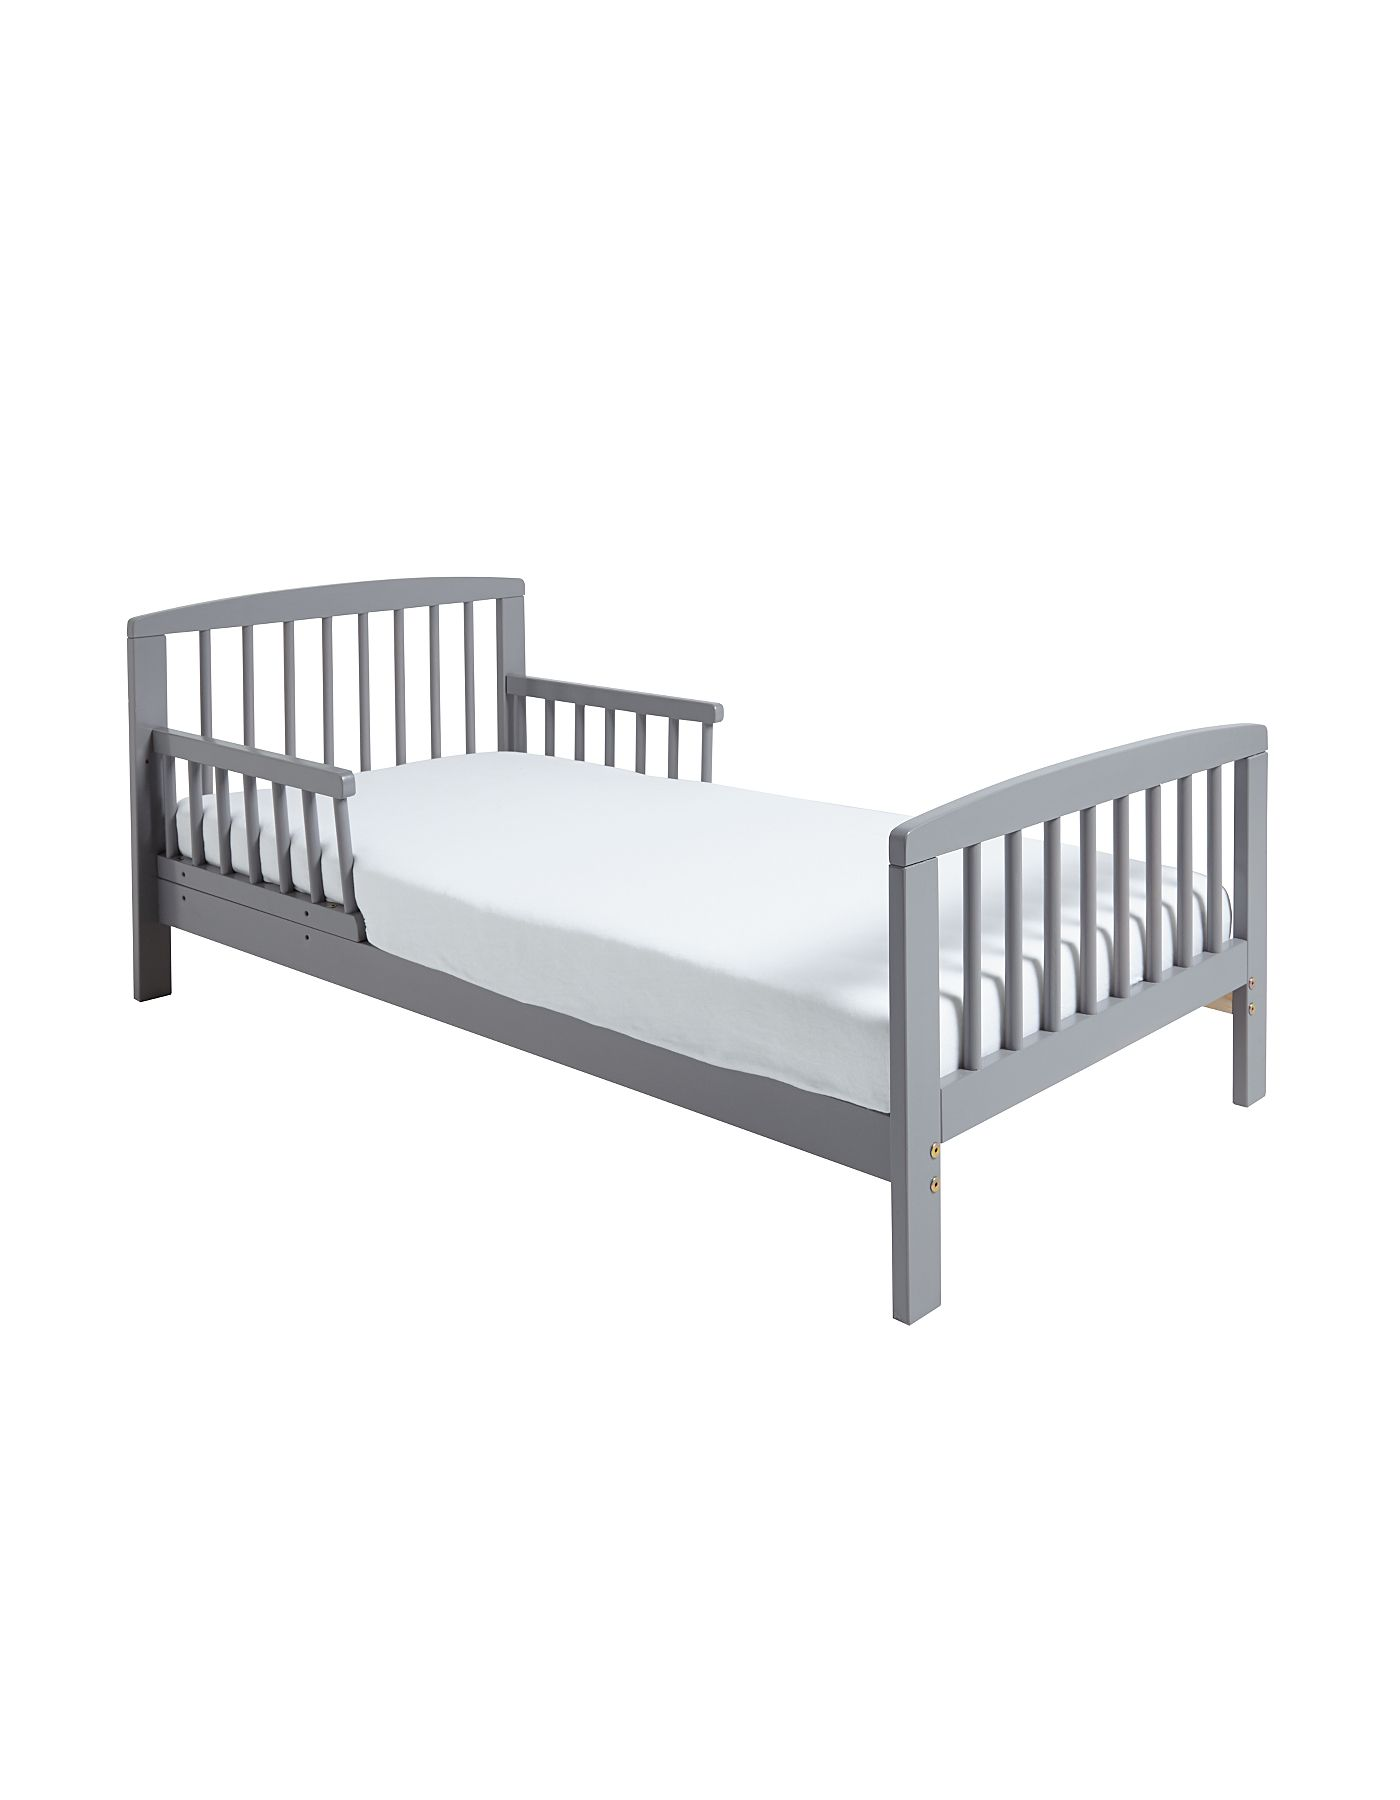 Kinder Valley Kai Toddler Bed